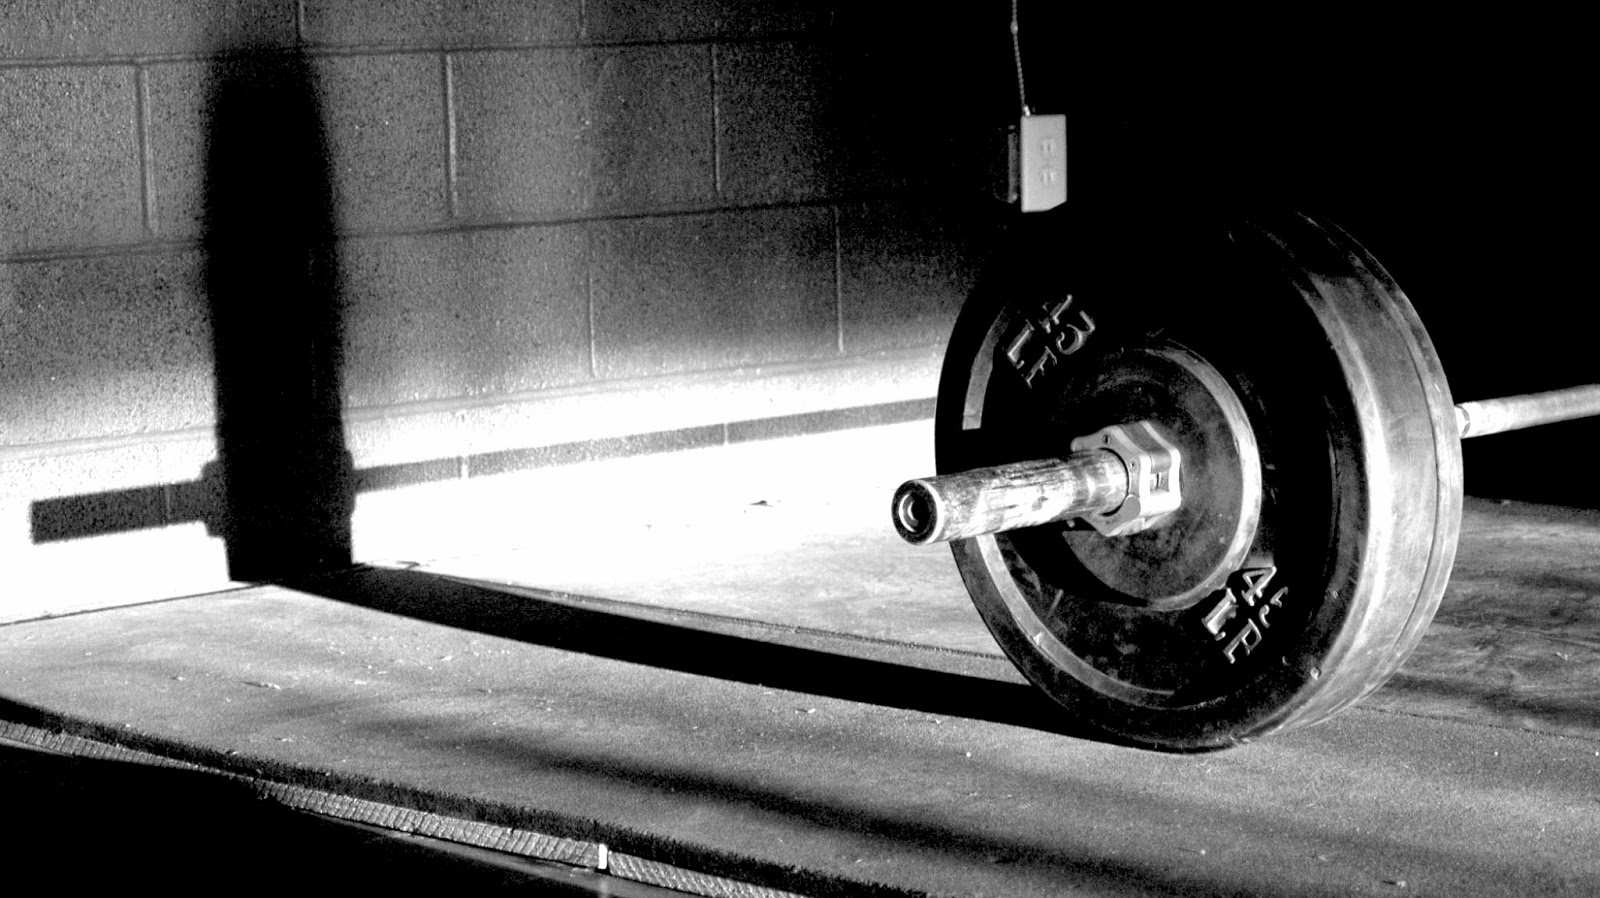 barbell photography - photo #1